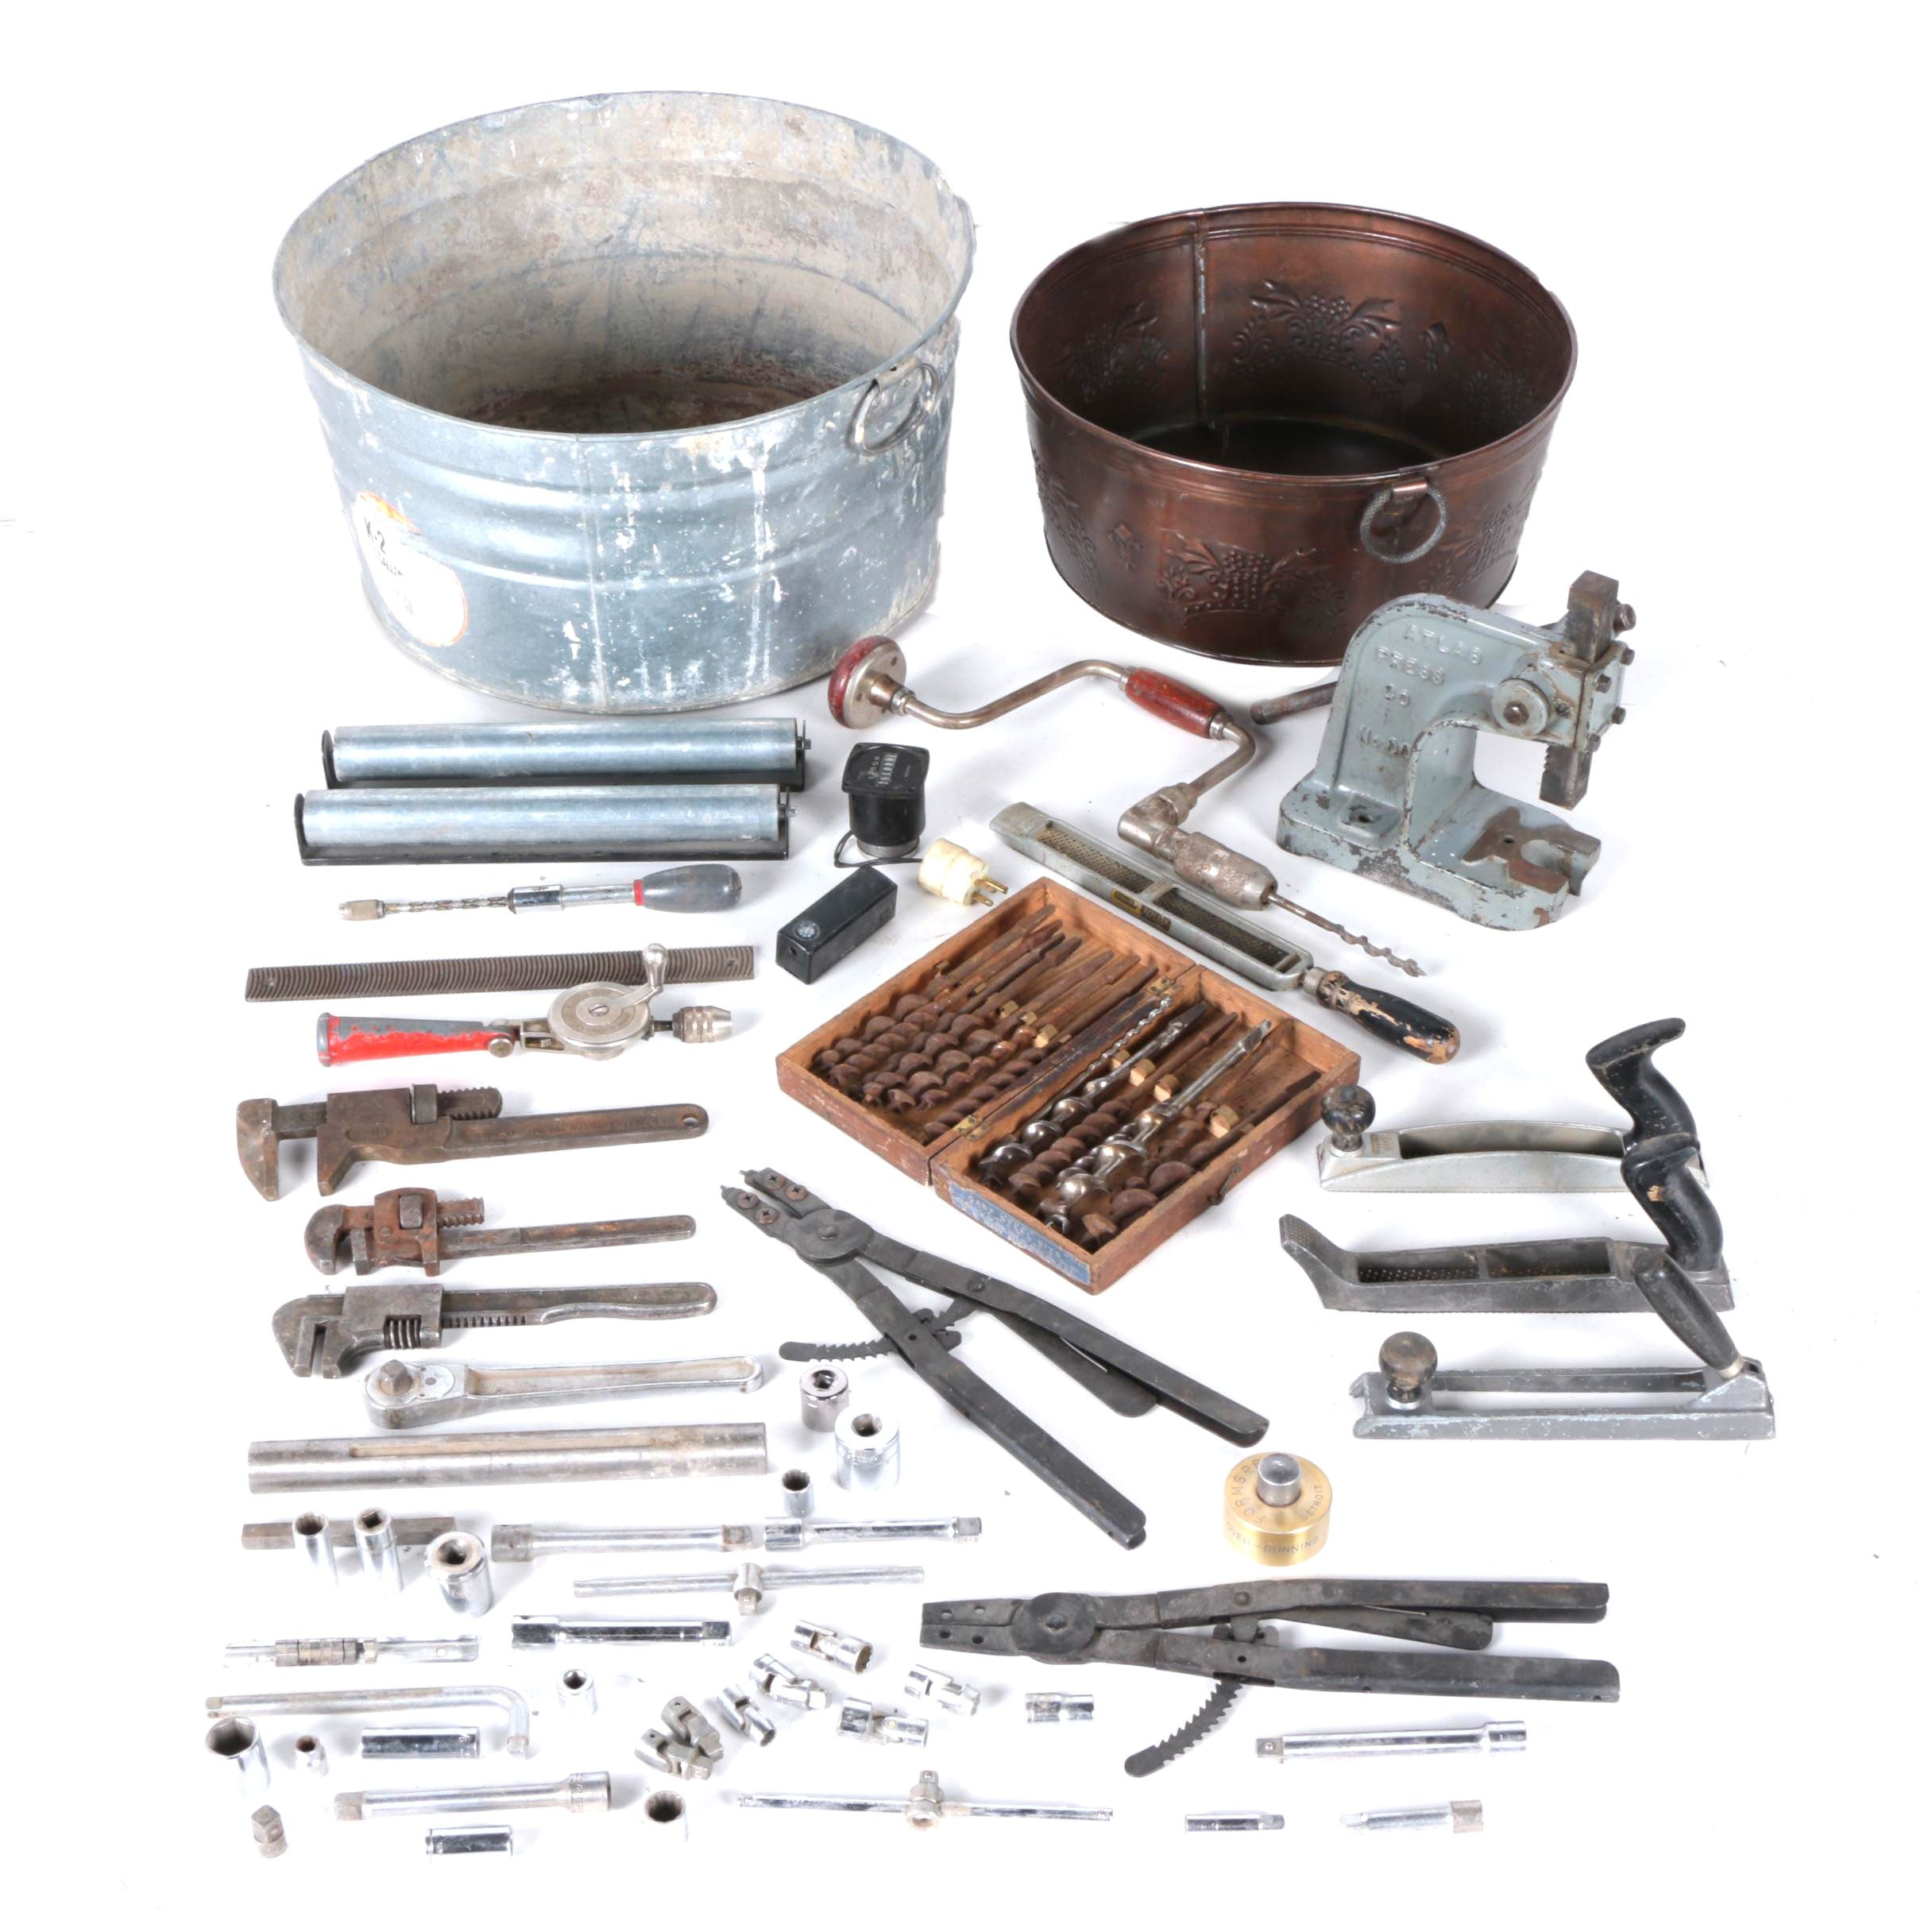 Pair of Metal Tubs and Tools Featuring Brace Drills and Squared Auger Bits